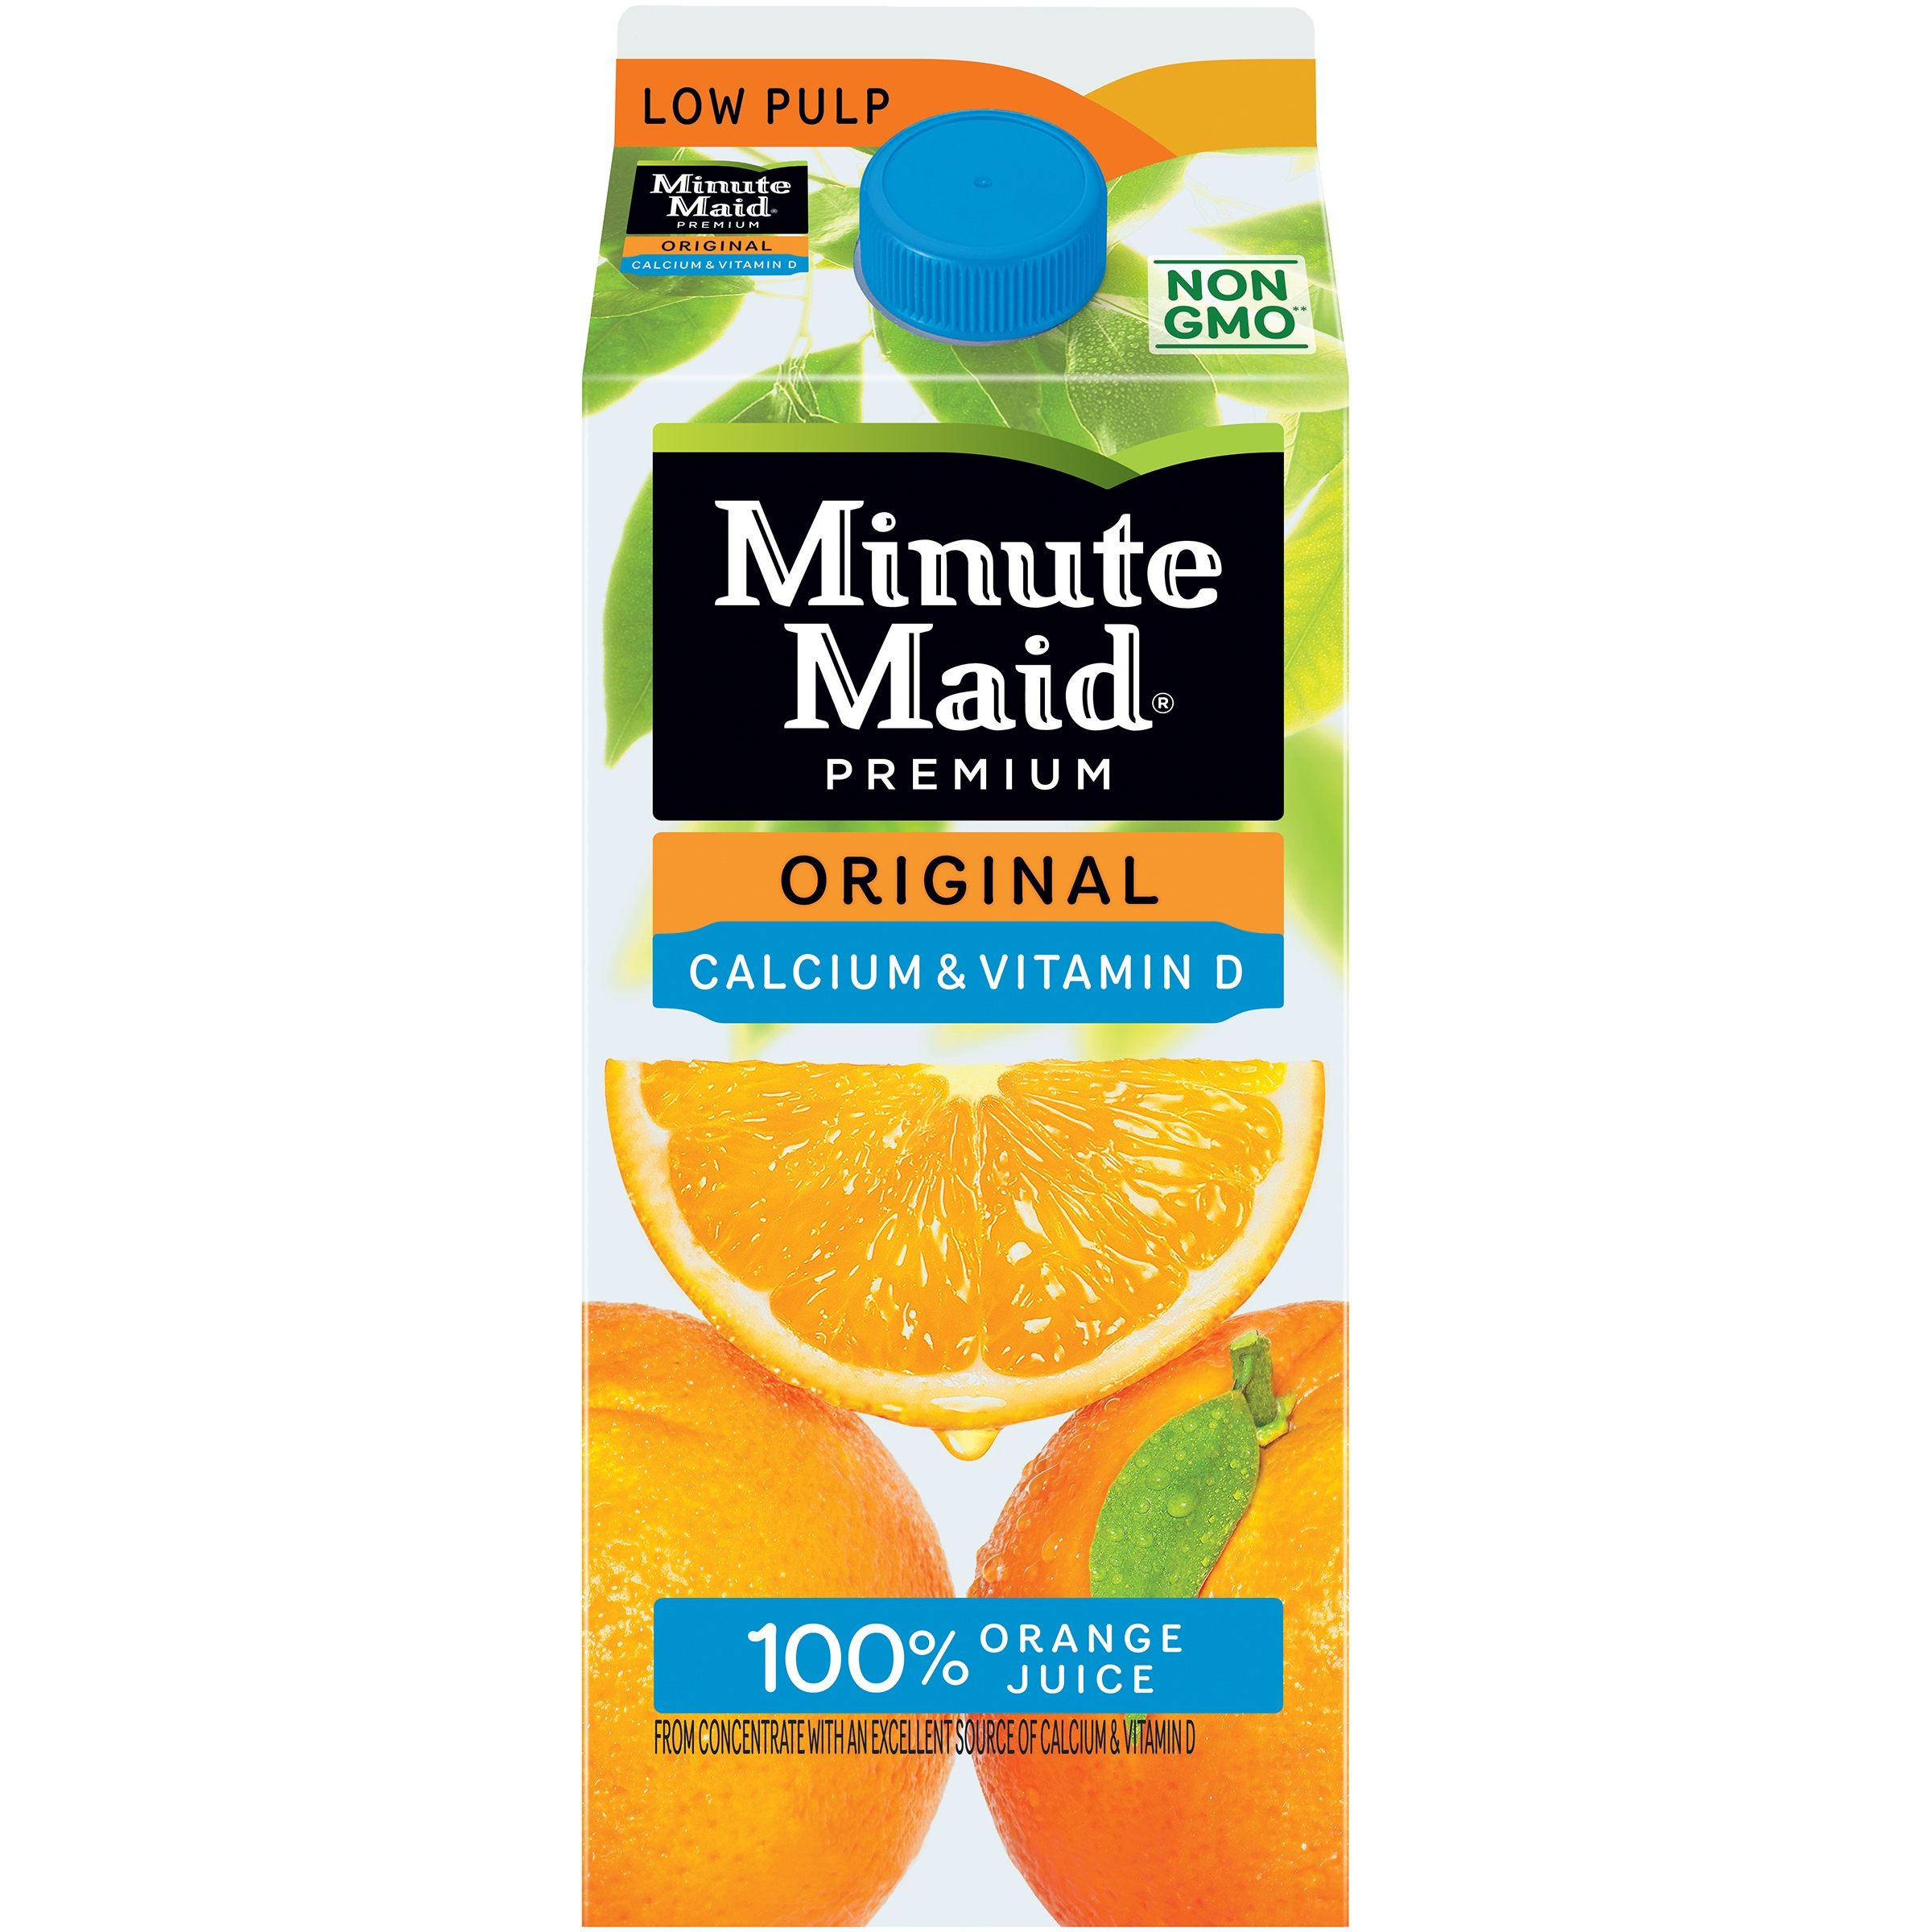 Minute Maid® Premium Original Calcium + Vitamin D Low Pulp 100% Orange Juice 59 fl. oz. Carton